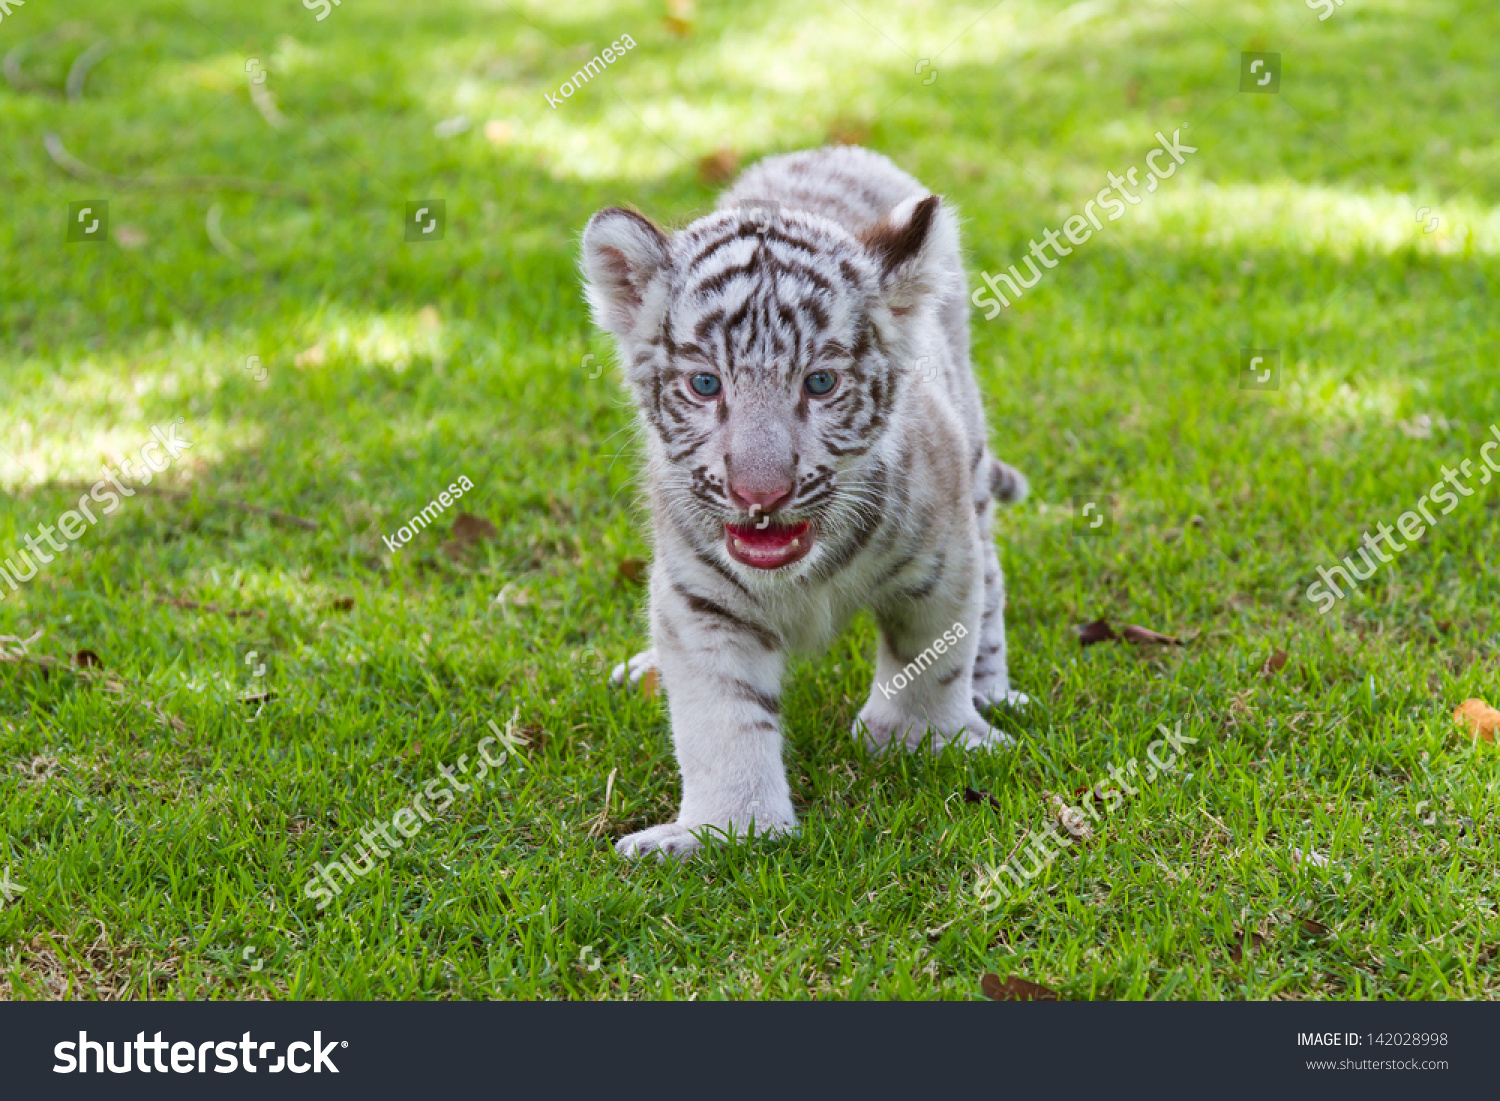 Baby white tiger pictures Black Rebel Motorcycle Club - On Tour Soon